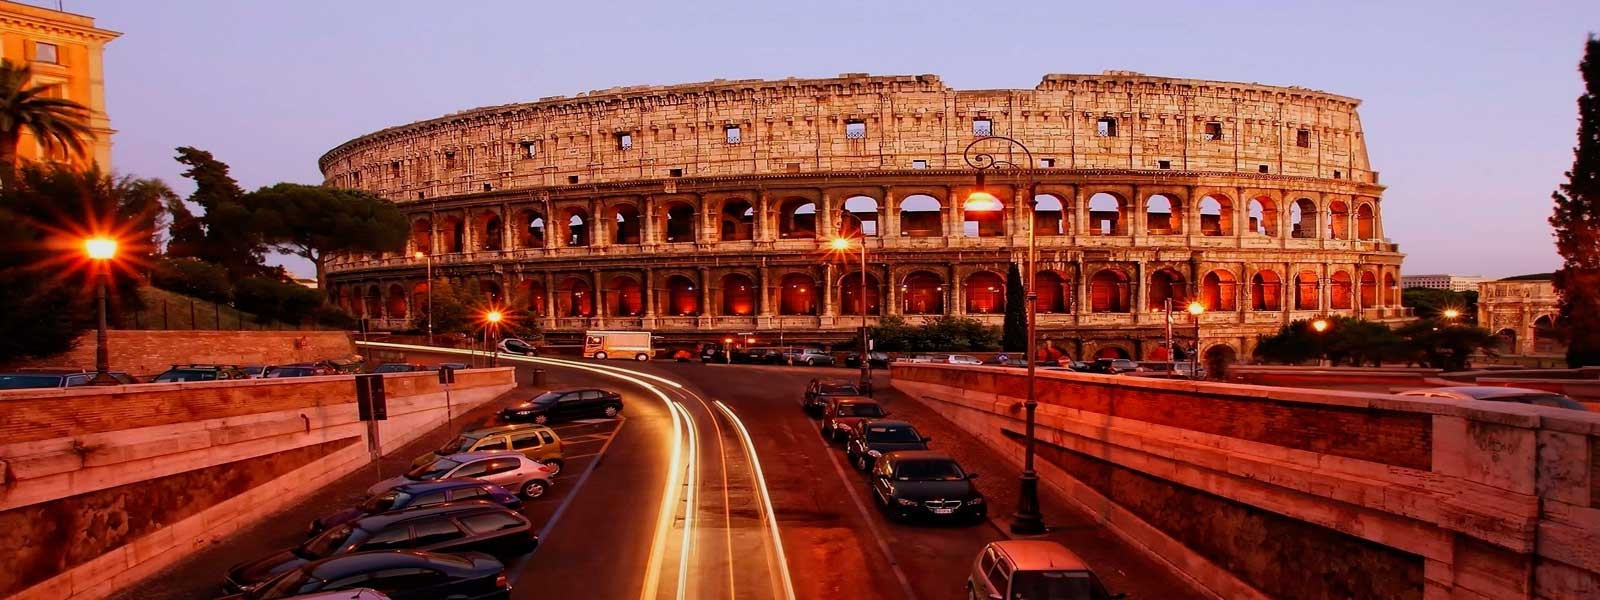 Fascinating motorcycle tour of Rome